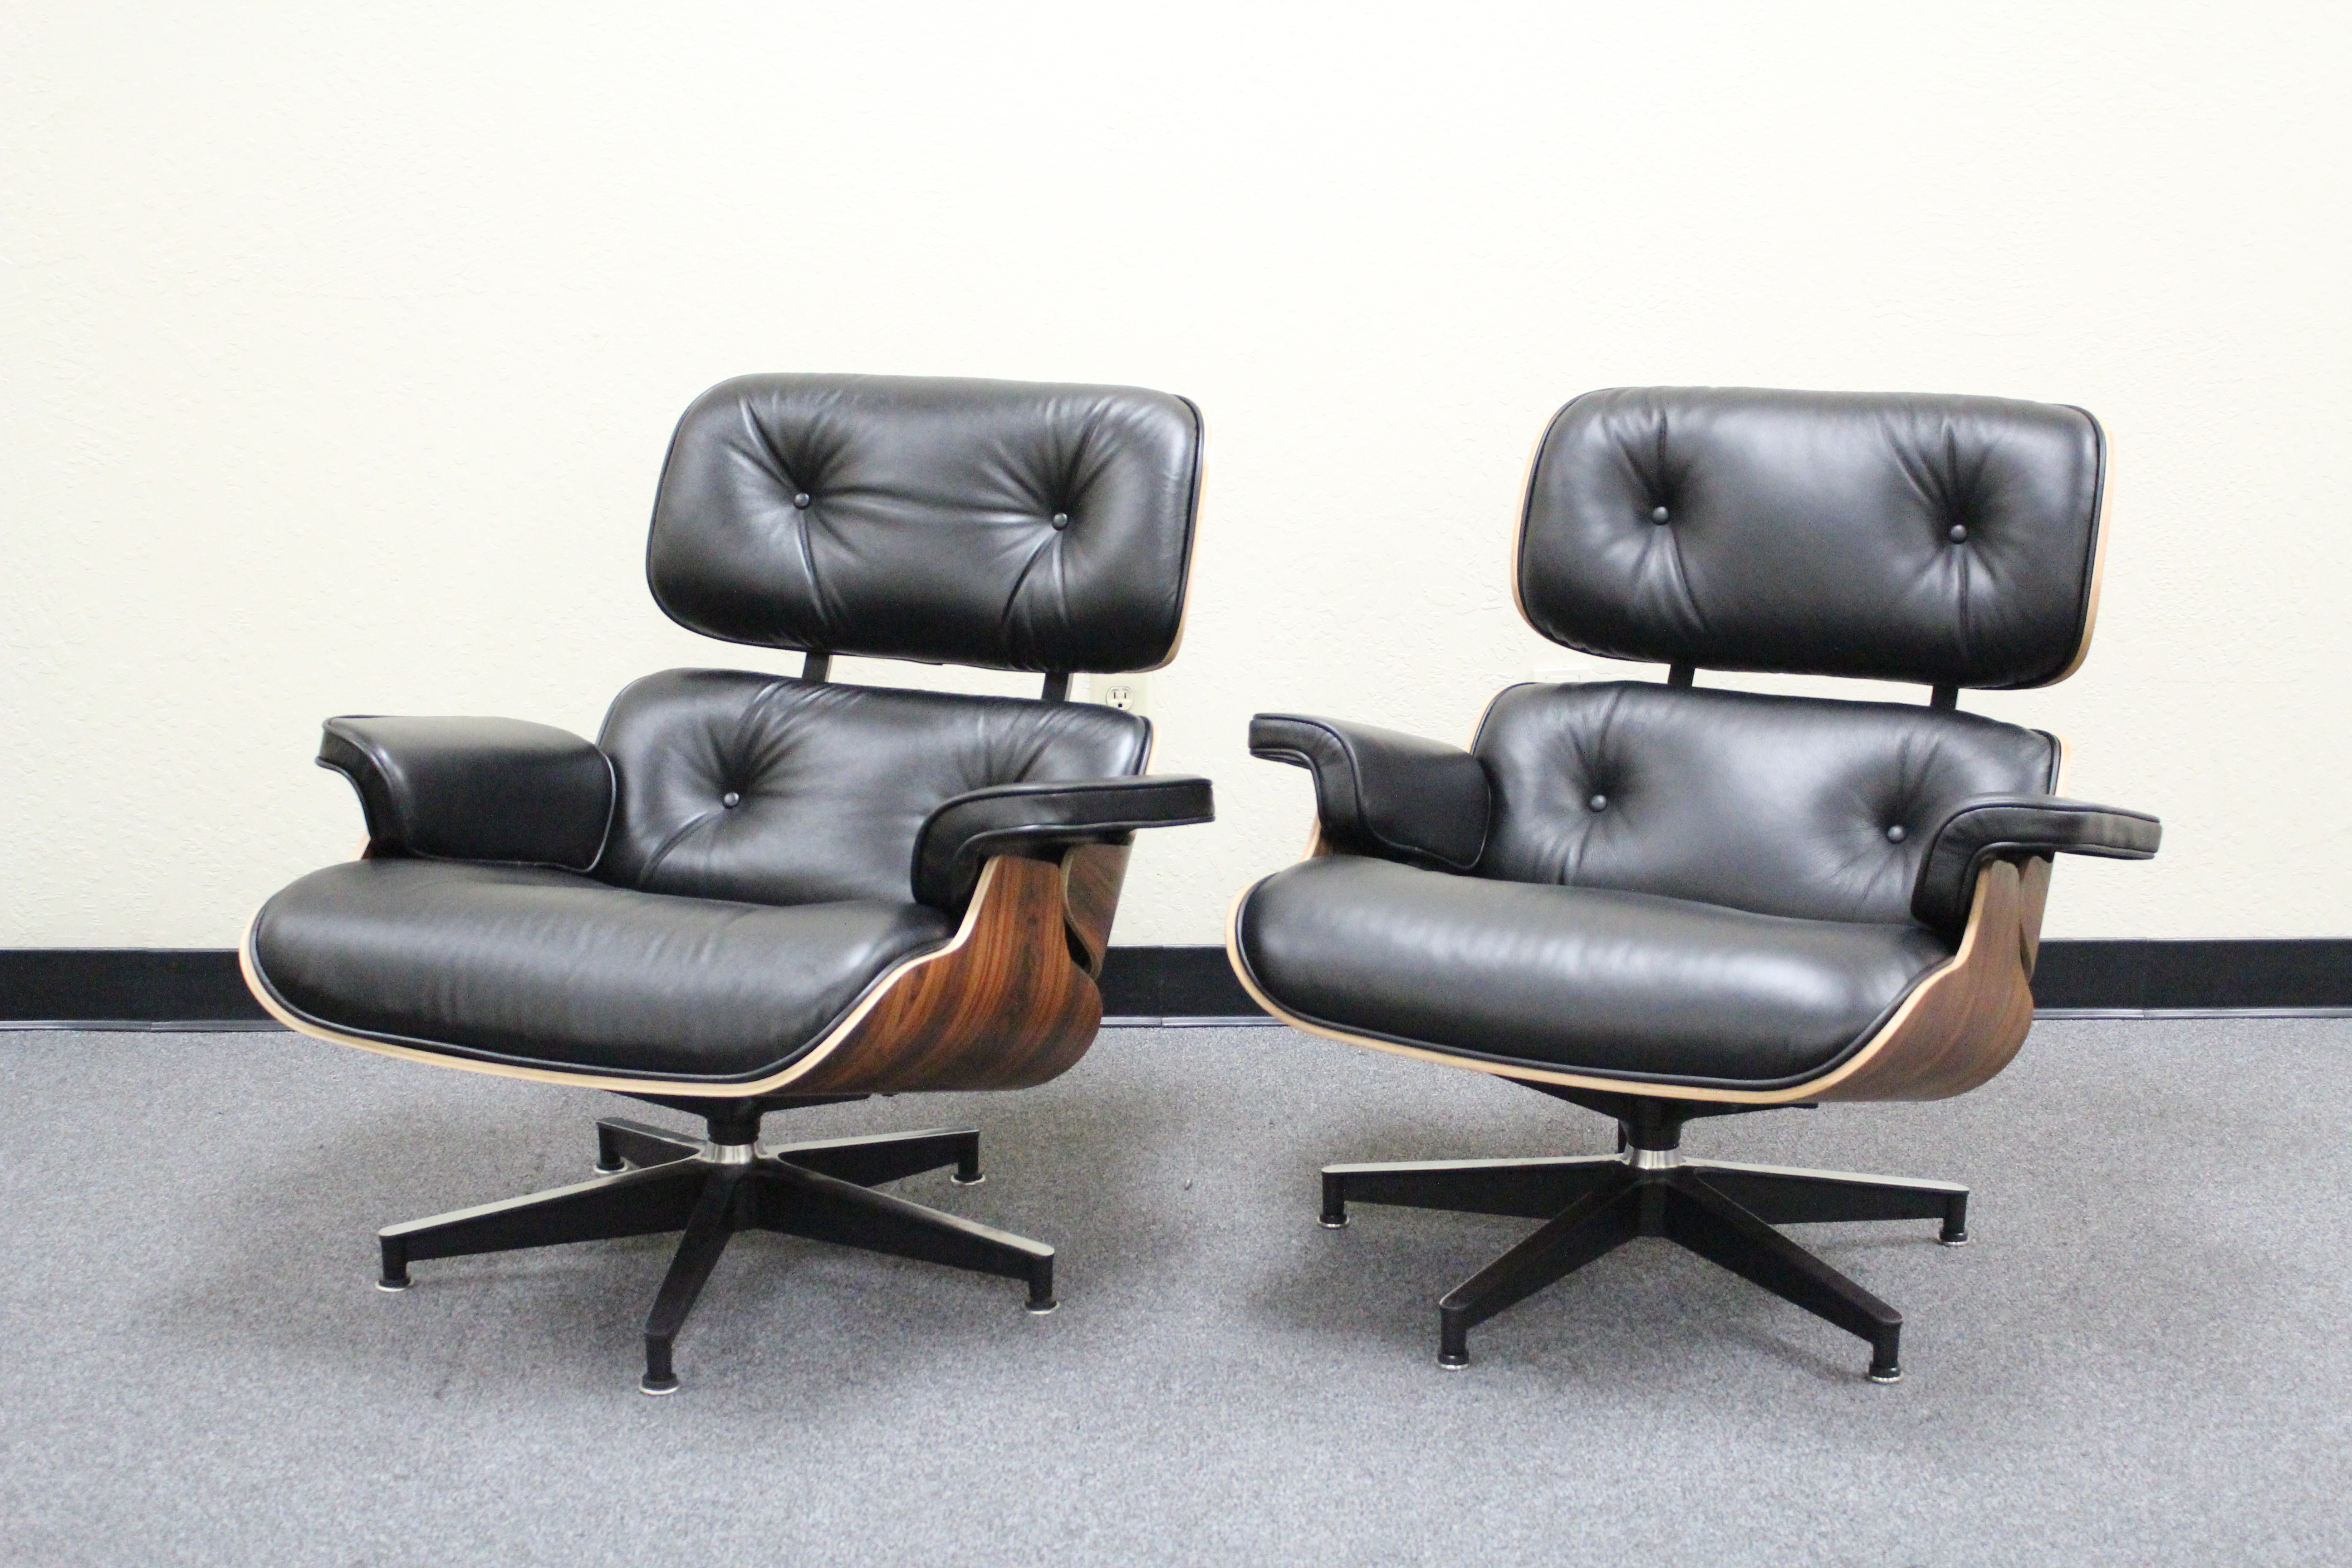 milano lounge black republic eames reproduction replica limited edition chair ottoman piping leather furniture full special italian cowhide pin